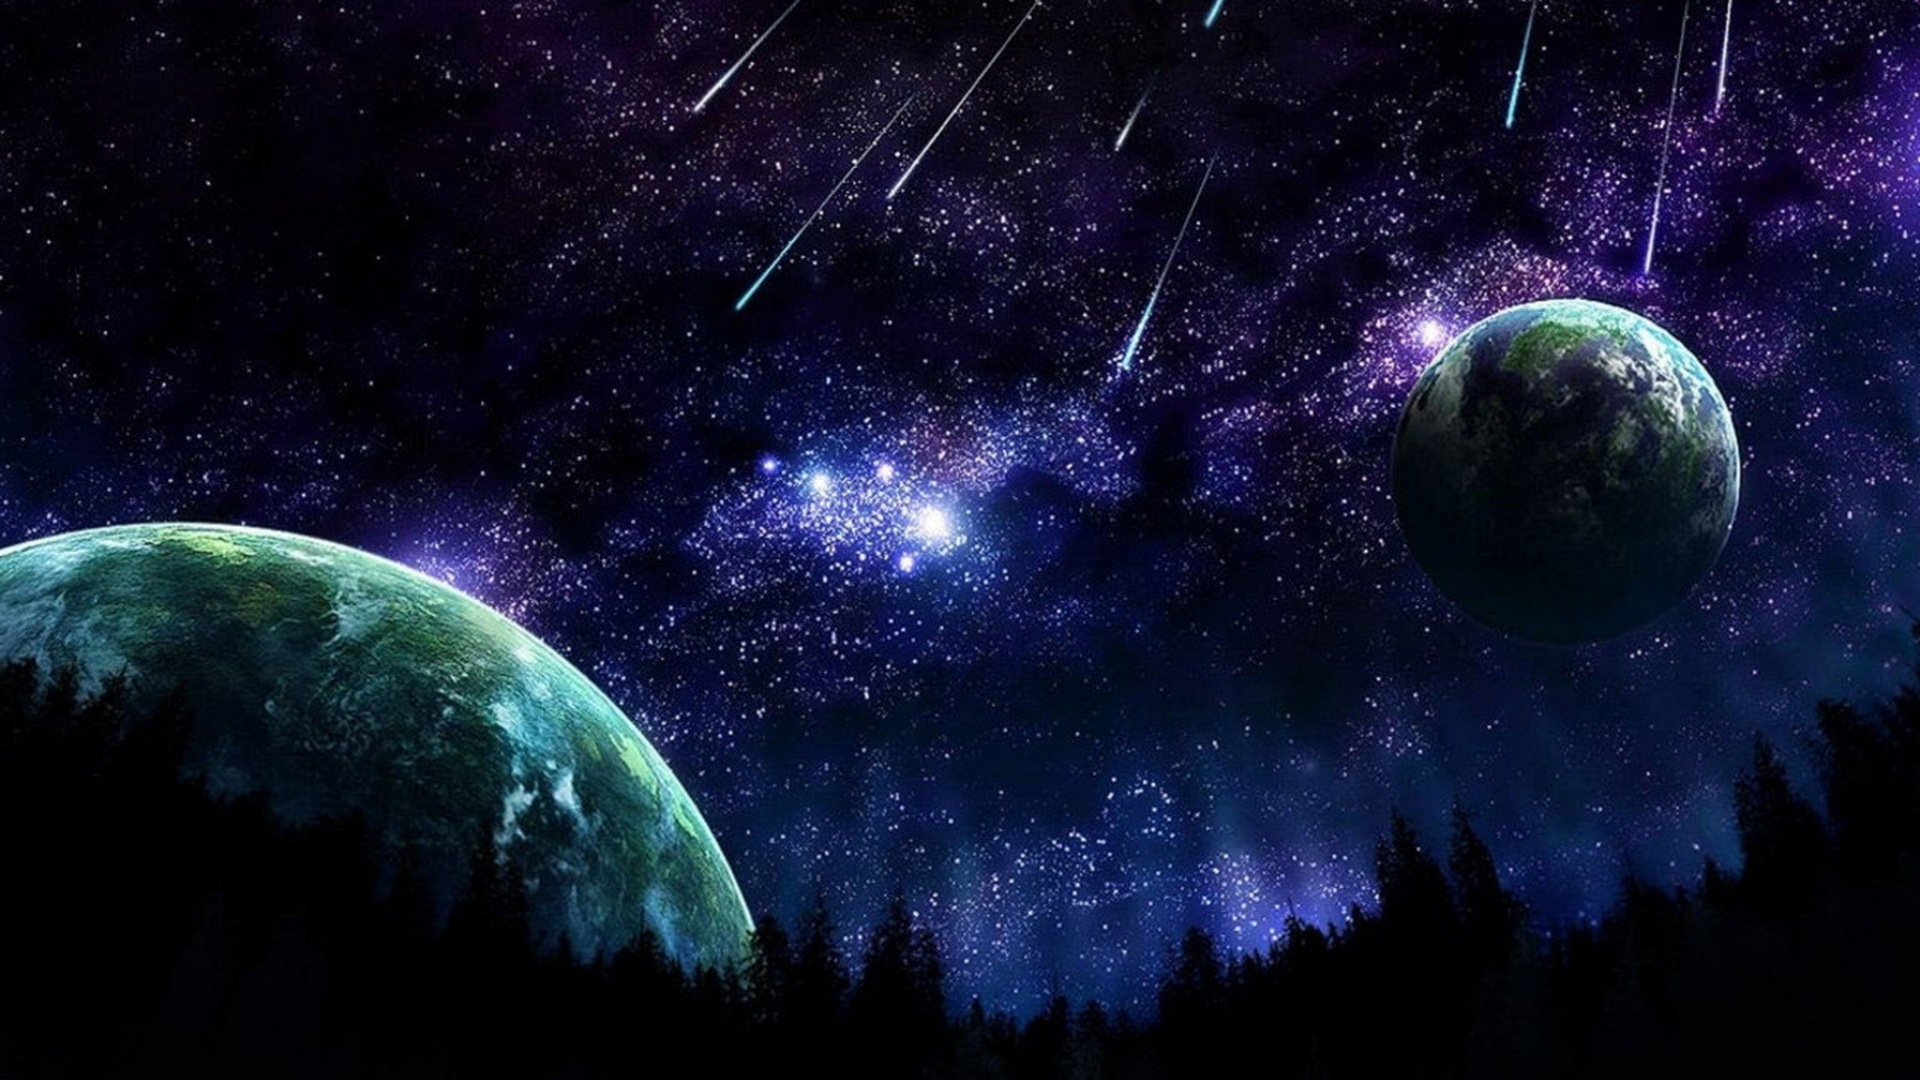 outer space backgrounds - wallpaper.wiki